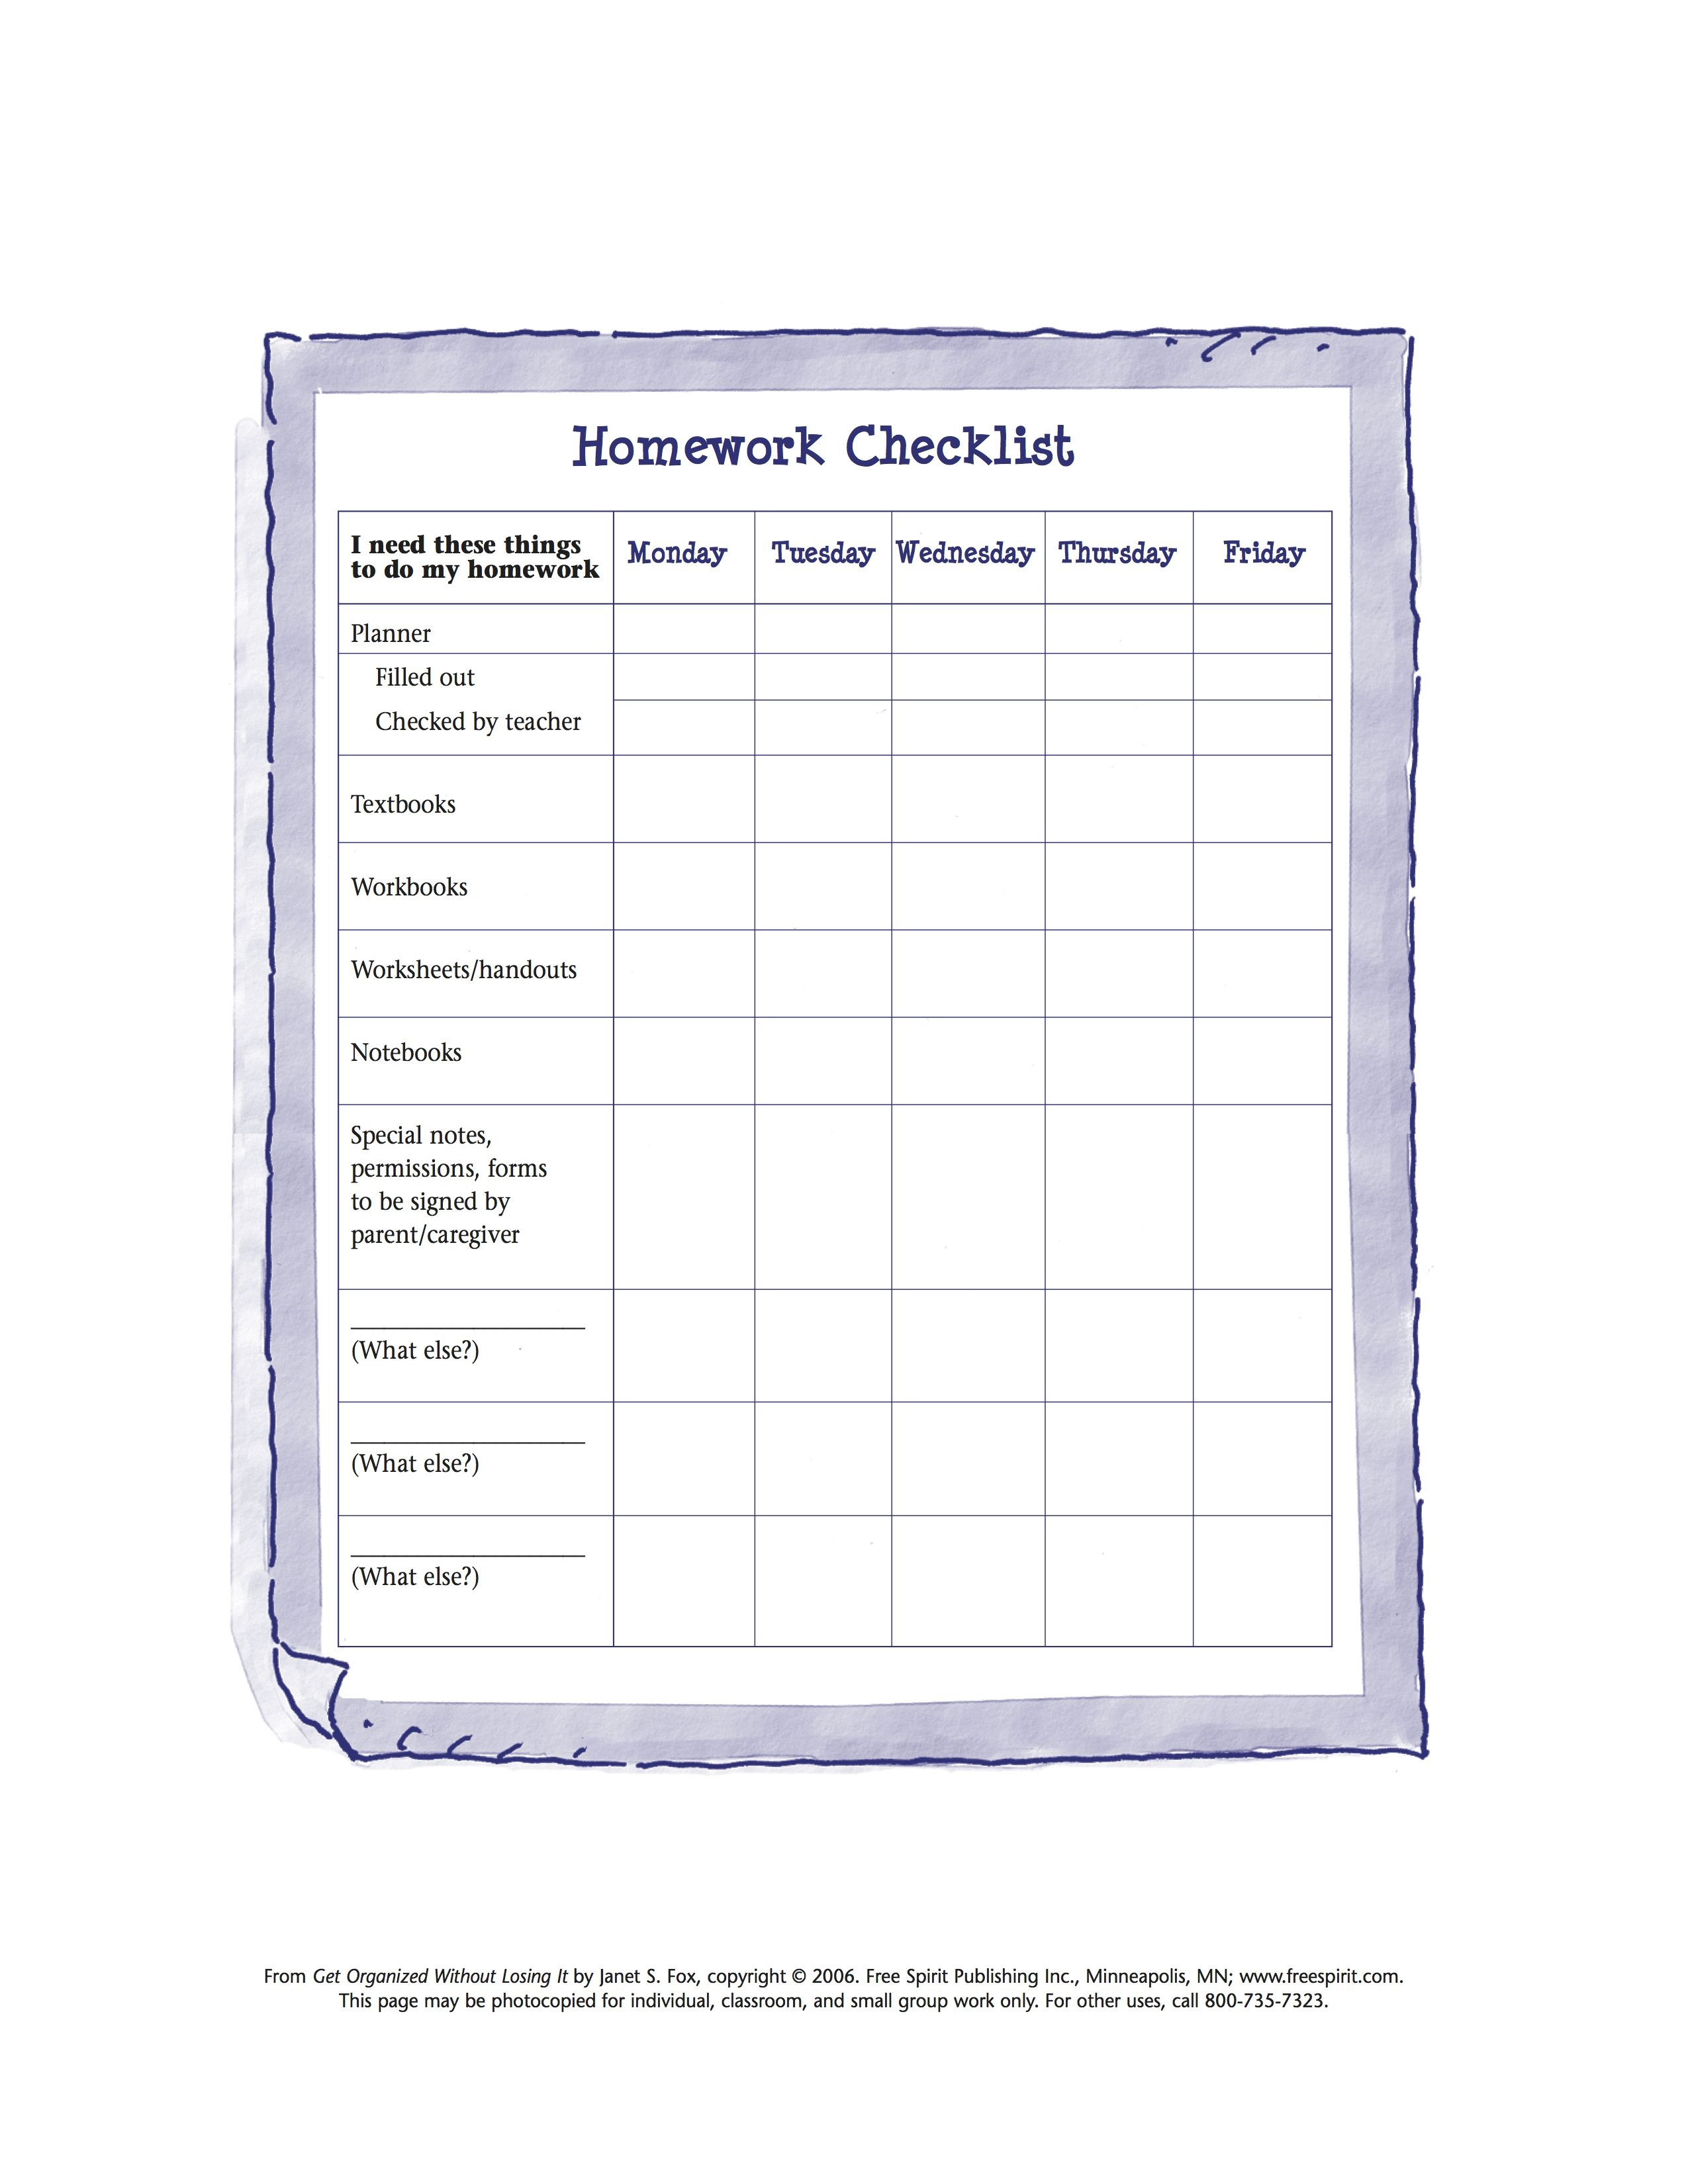 Free Printable Worksheet To Help Kids Organize Tools Needed For - Free Printable Homework Templates